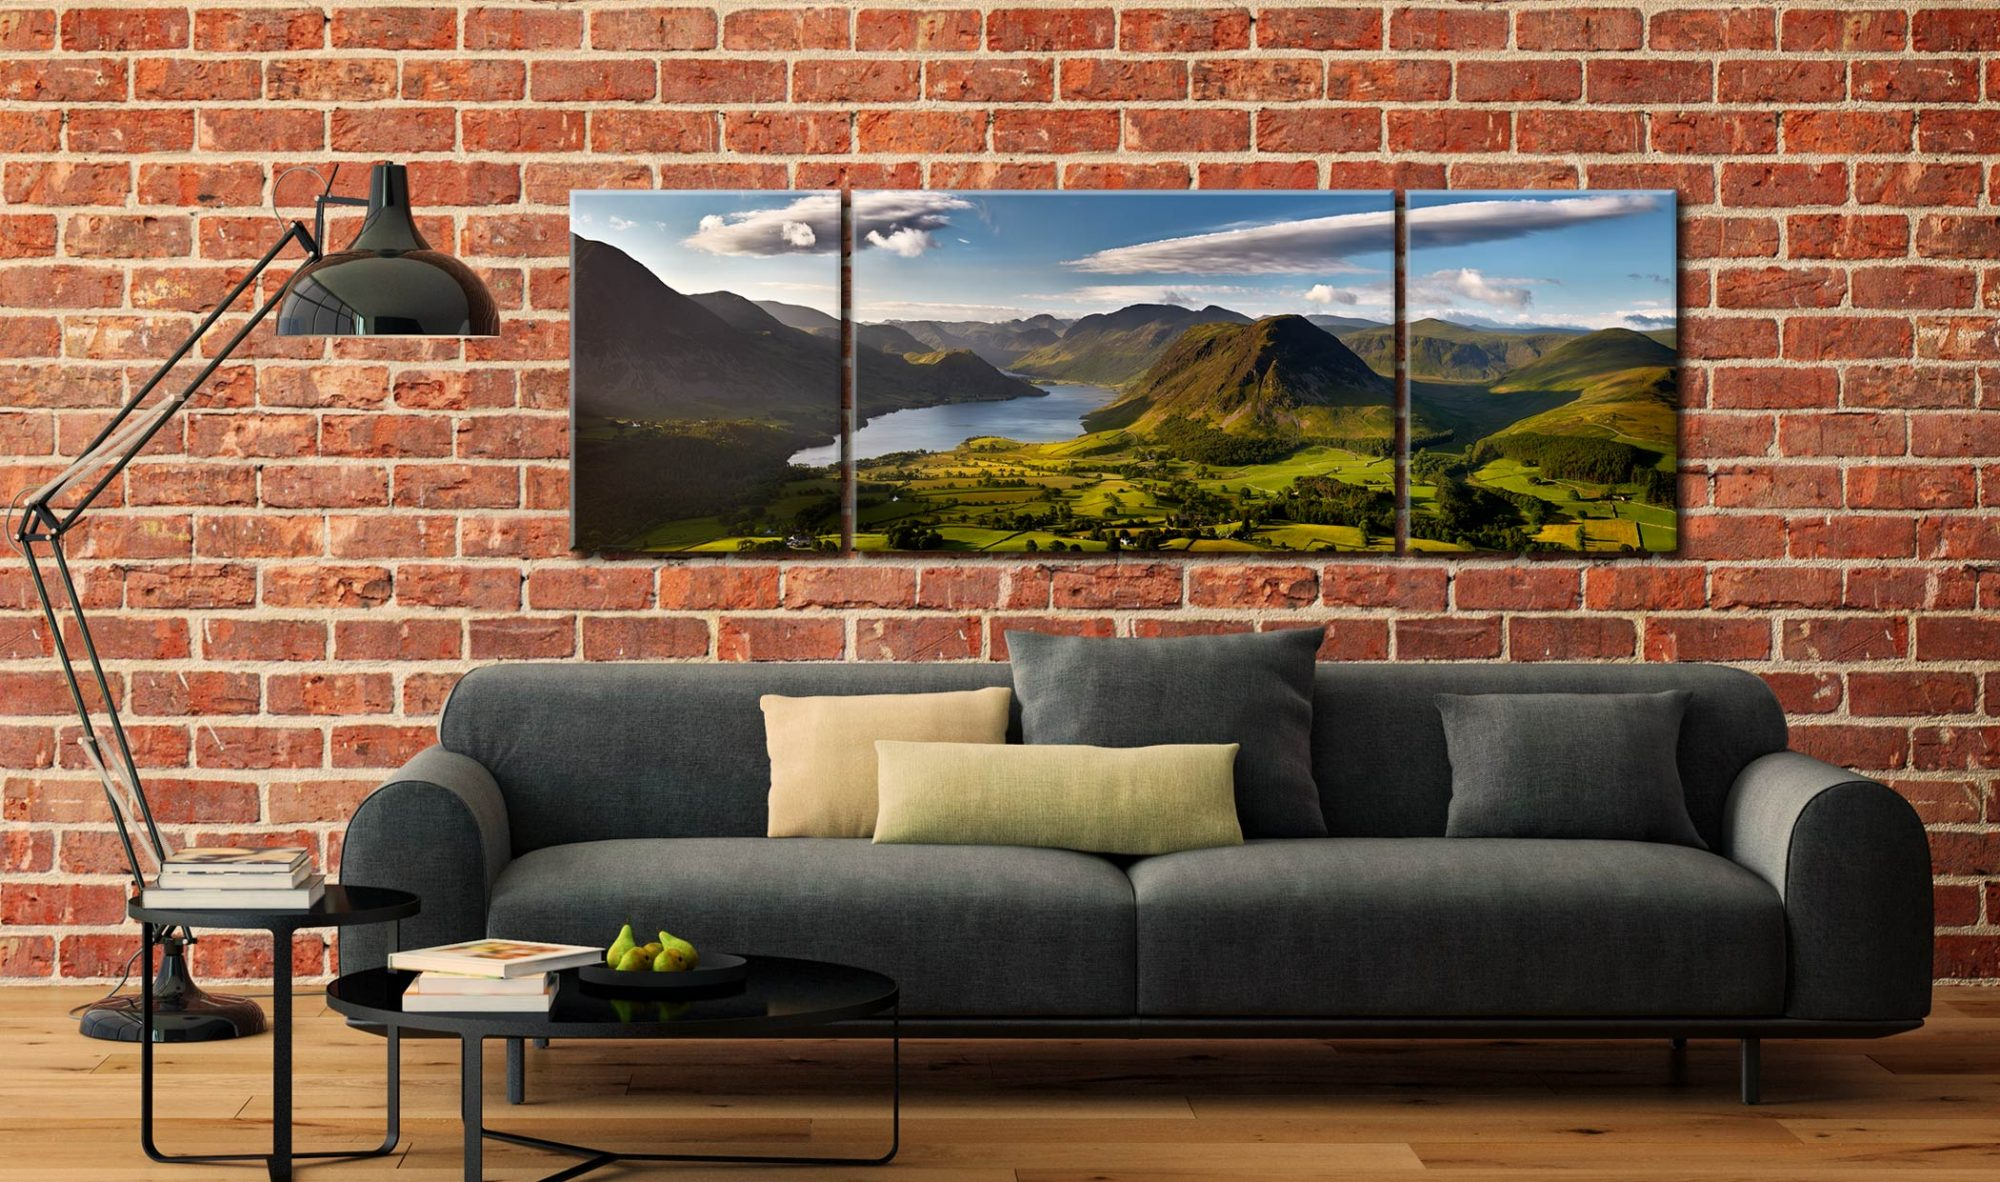 Morning Sunshine on Crummock Water - 3 Panel Wide Centre Canvas on Wall